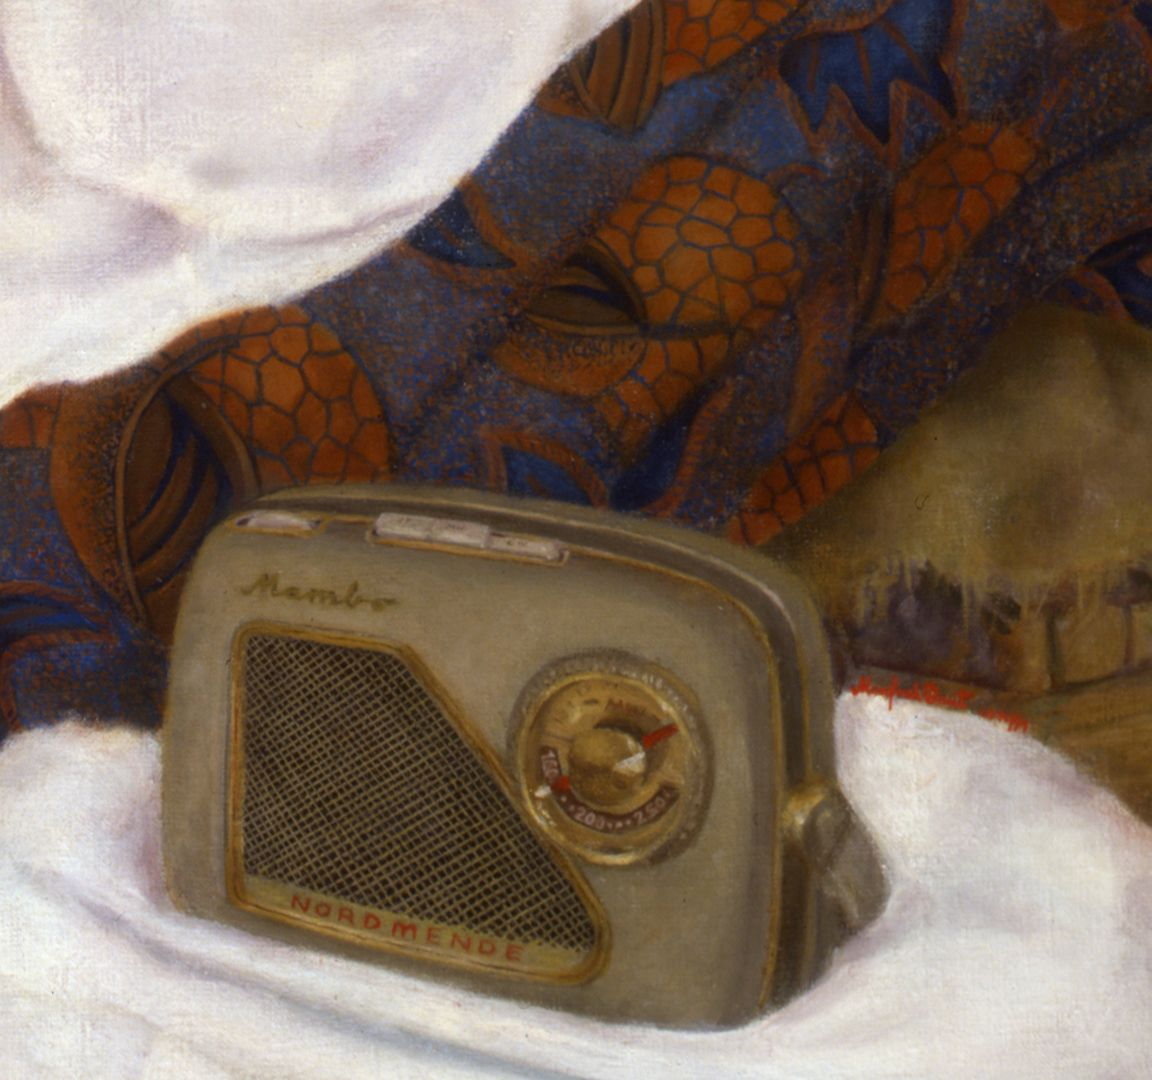 The art student H.S. Detail, radio Mambo, lower half of the picture